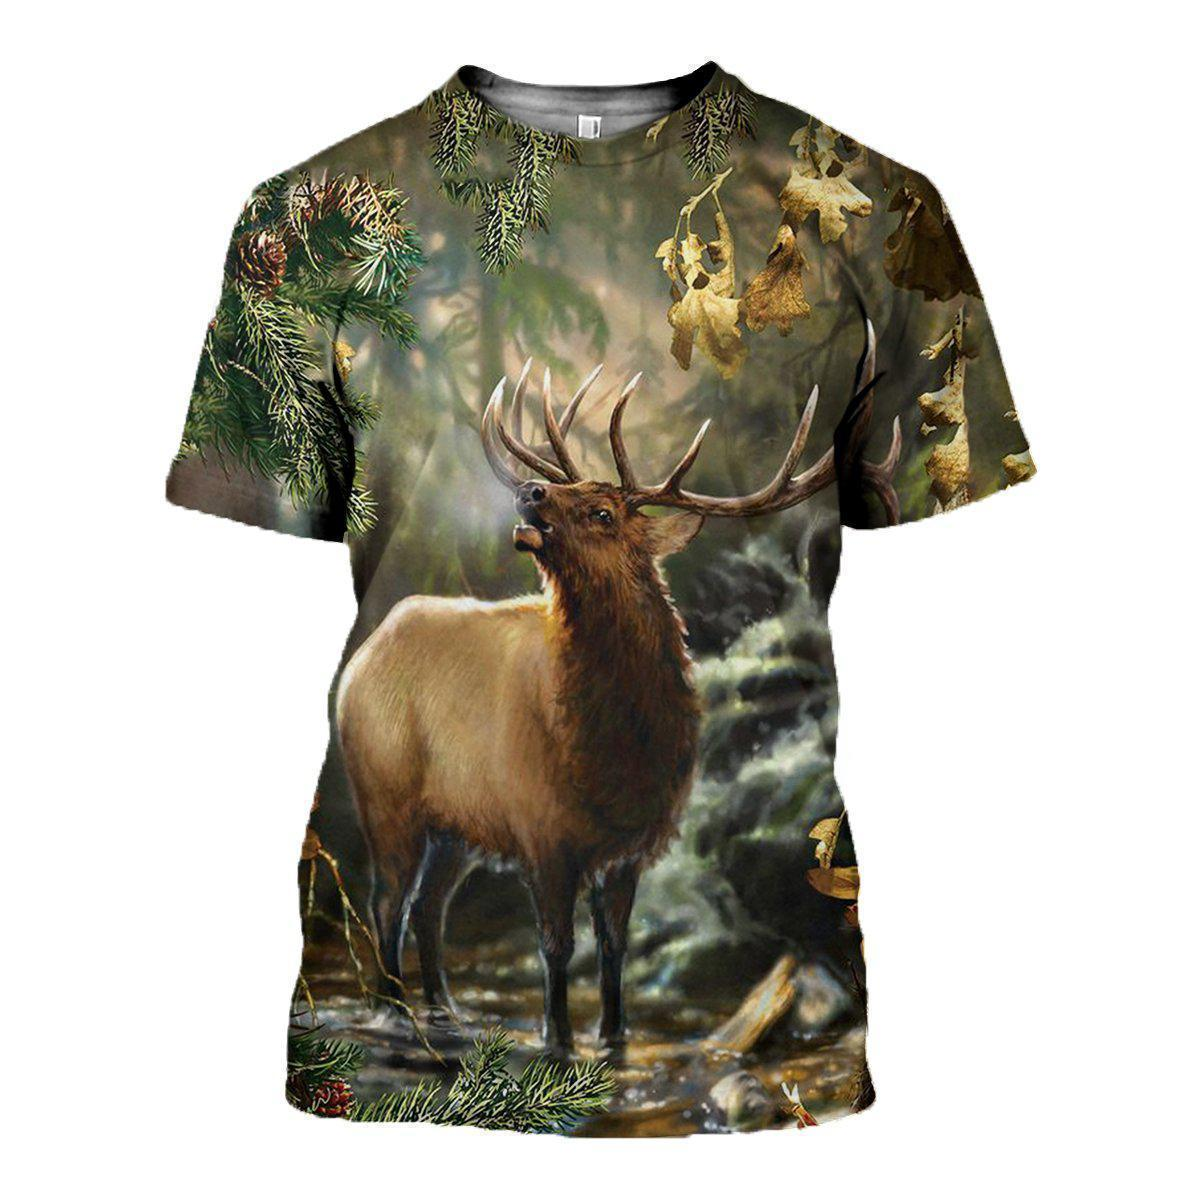 3D All Over Printed Deer Art Clothes - Amaze Style™-Apparel